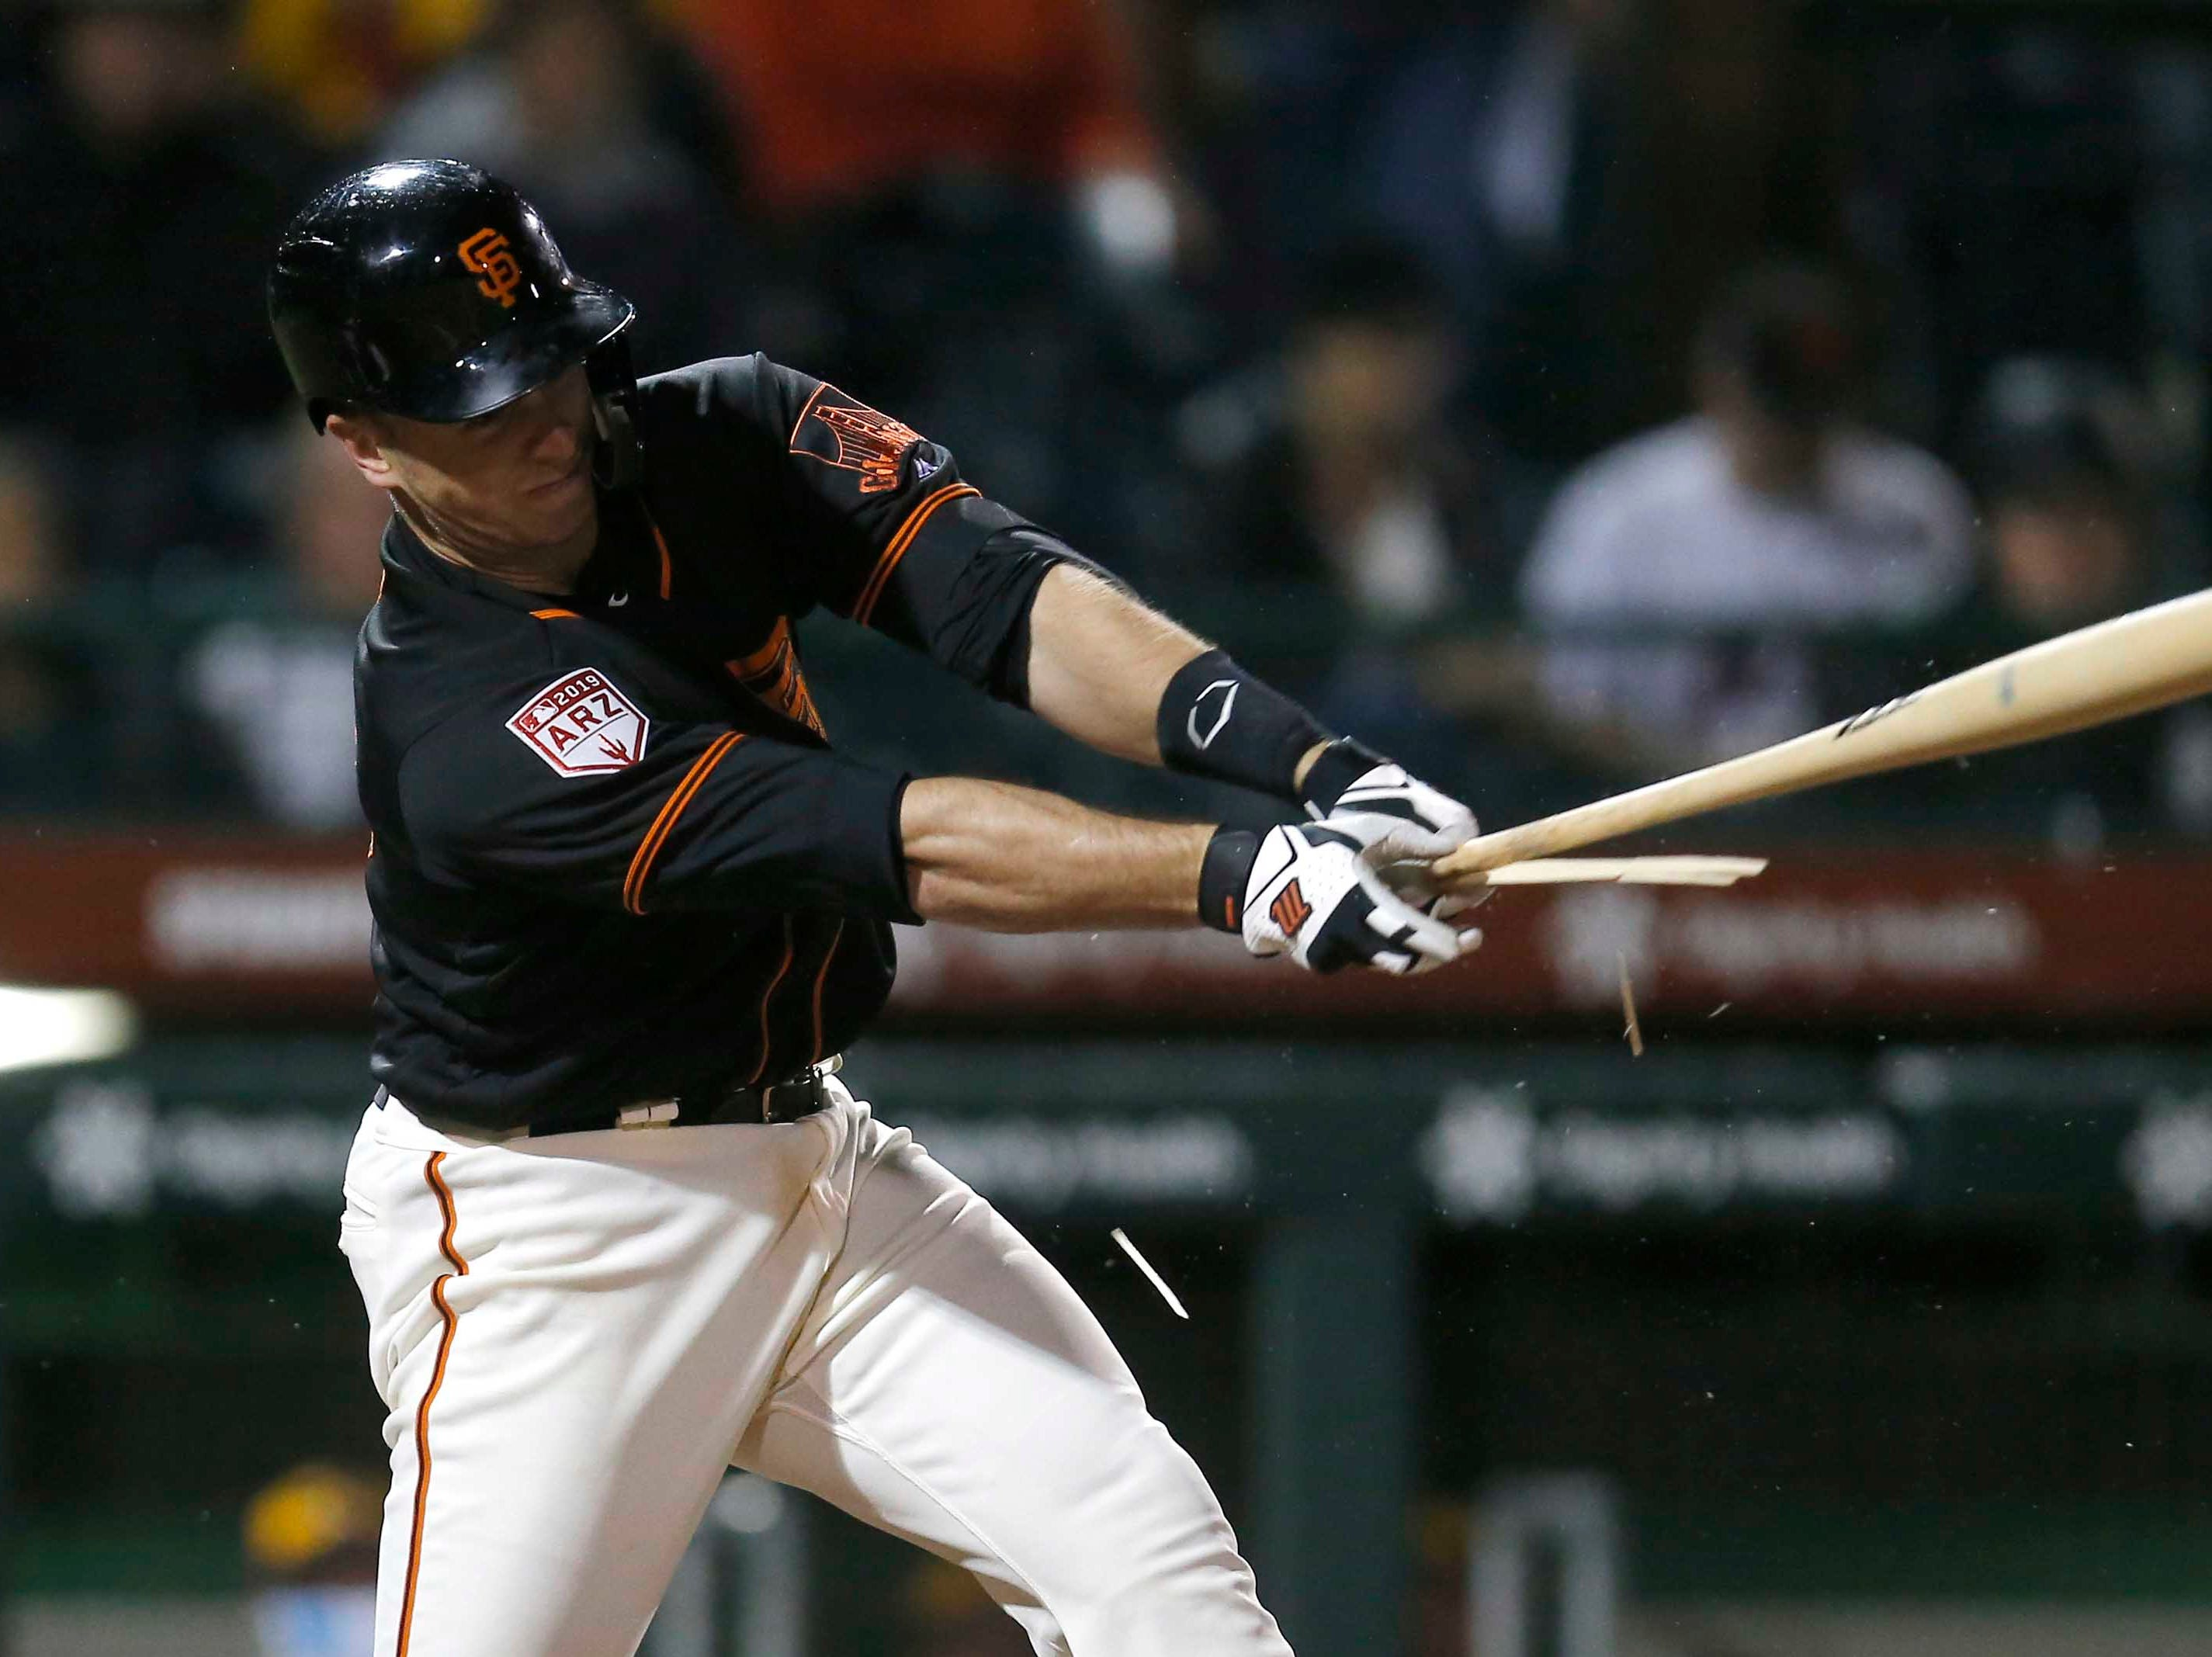 March 12: Giants catcher Buster Posey breaks his bat in the third inning against the Brewers.